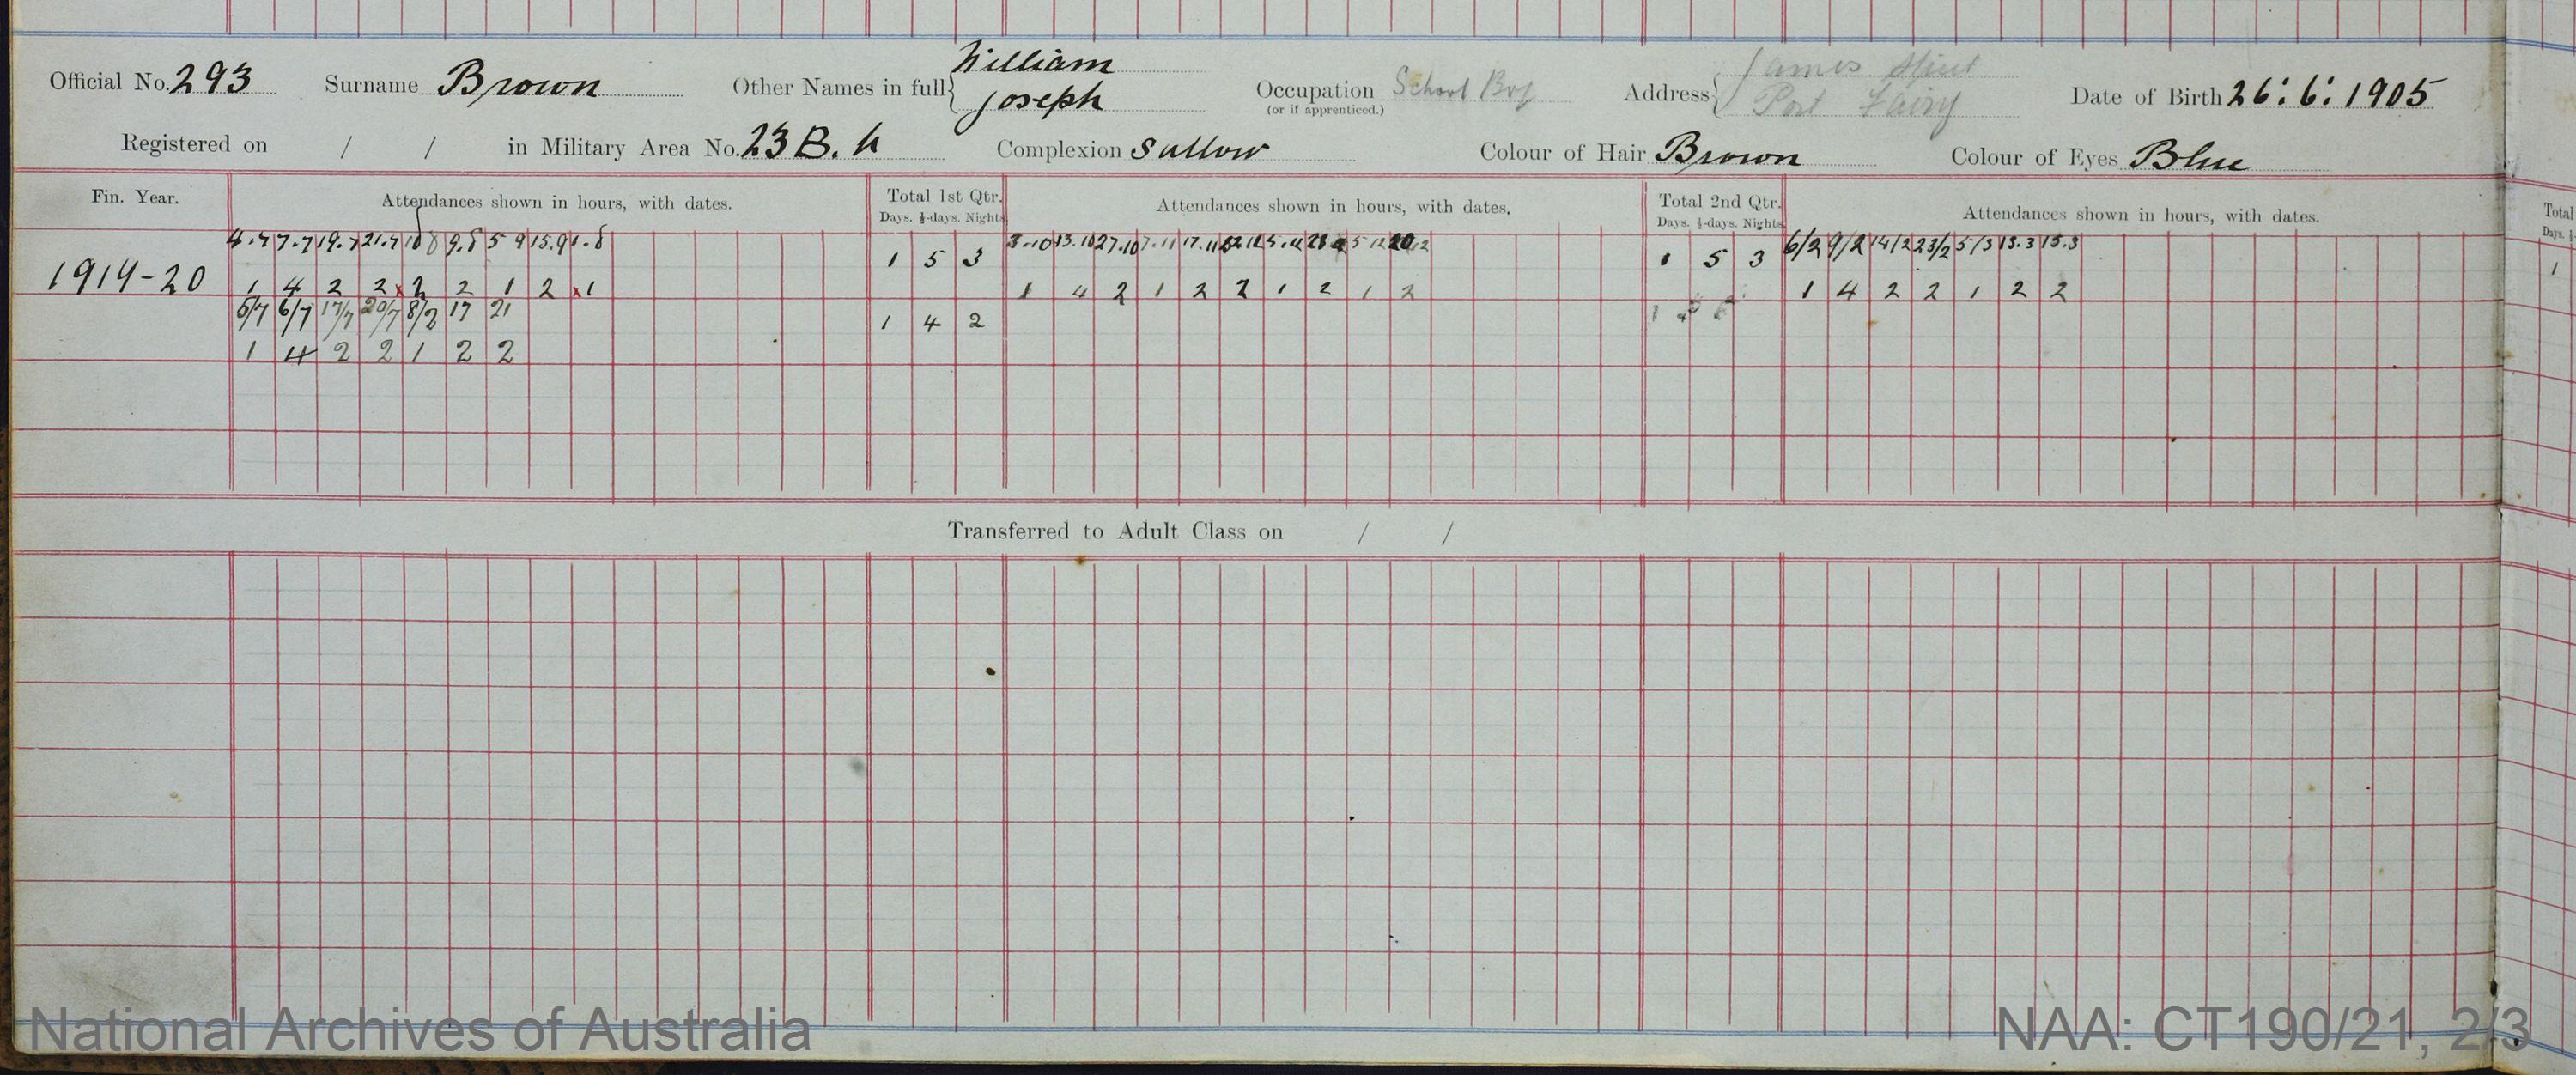 SURNAME - BROWN;  GIVEN NAME(S) - William Joseph;  OFFICIAL NUMBER - 293;  DATE OF BIRTH - 26 June 1905;  PLACE OF BIRTH - [Unknown];  NEXT OF KIN - [Unknown] ;  SERVICE/STATION - Port Fairy;  REGISTRATION DATE - 1919